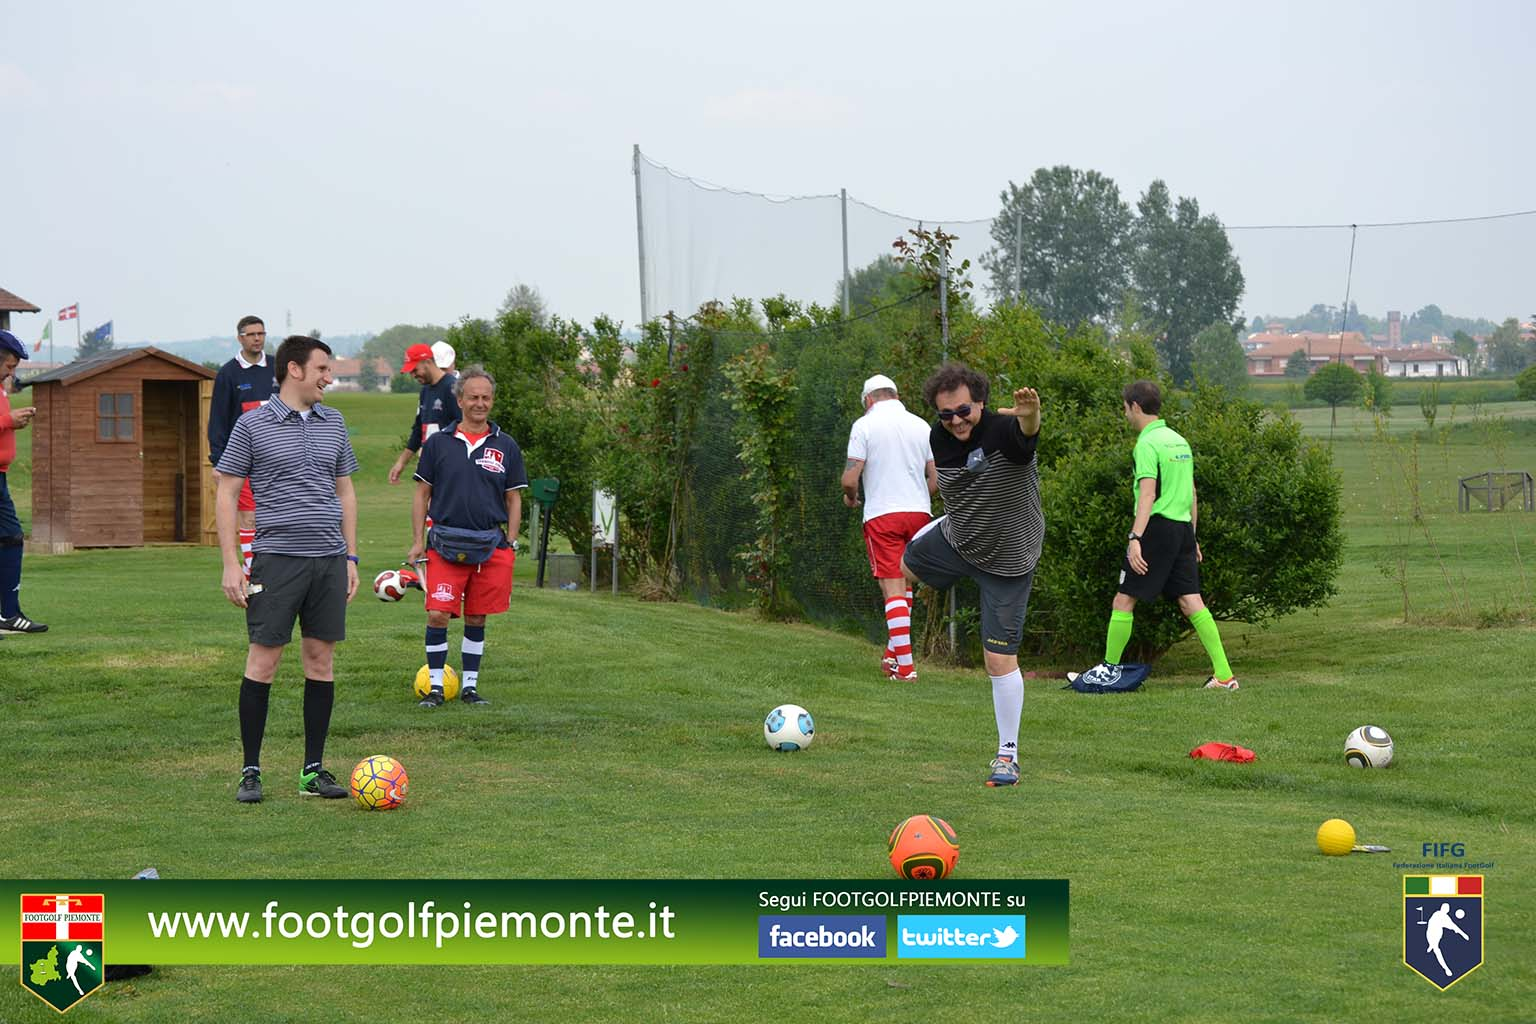 FOTO 9 Regions' Cup Footgolf Piemonte 2016 Golf Città di Asti (At) 30apr16-5